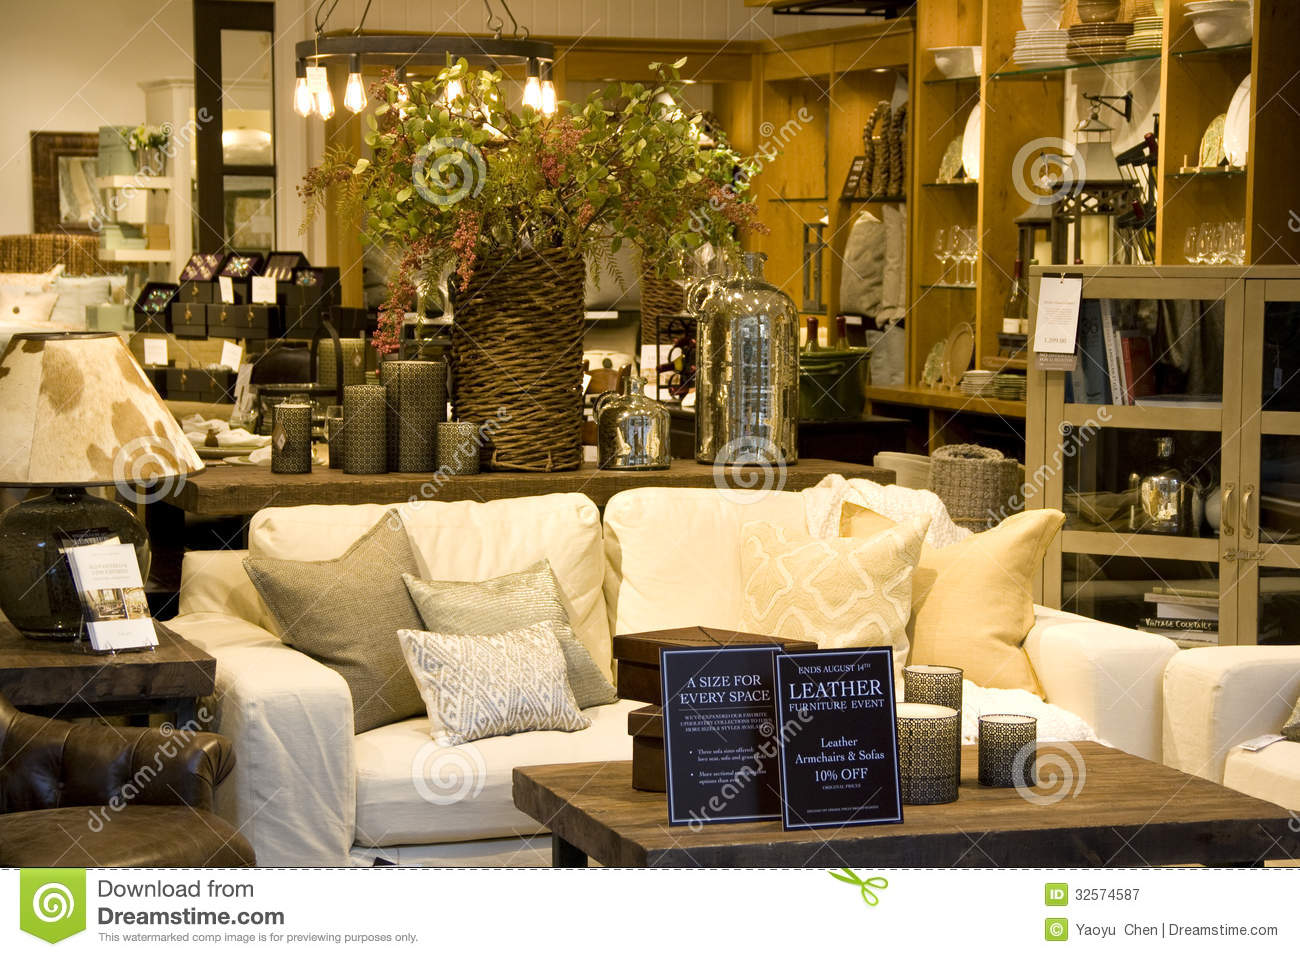 furniture home decor store editorial photography image news ideas at home decor store on pillows and home accents